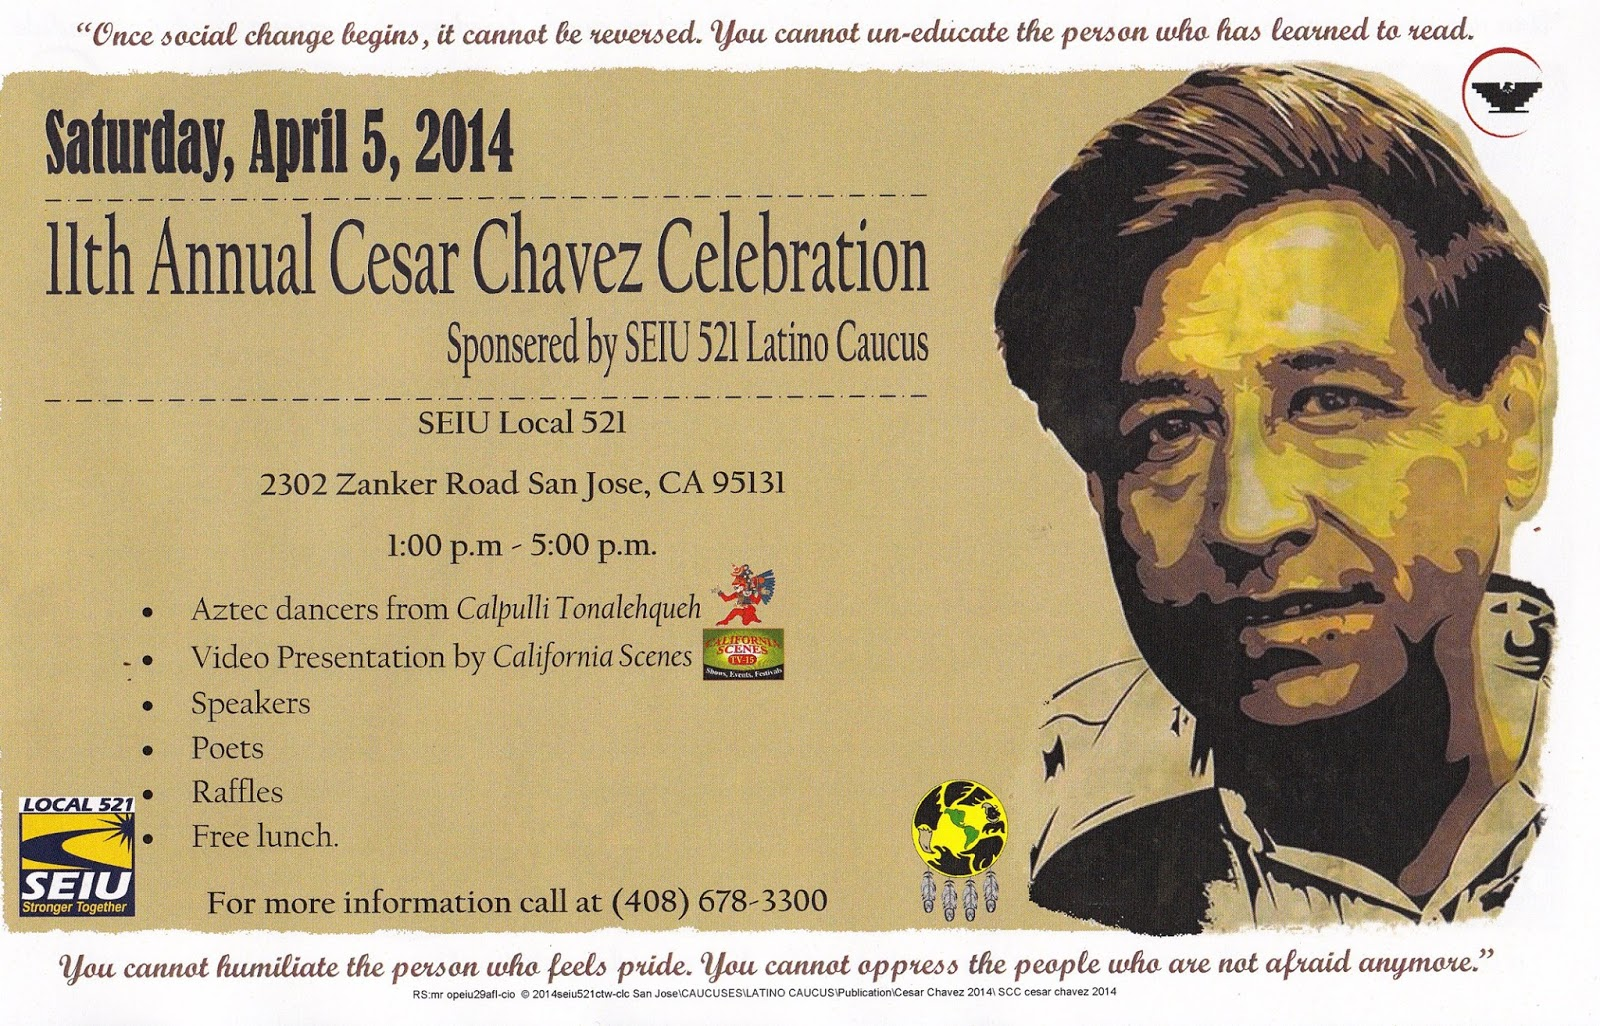 the life and times of cesar e chavez Cesar e chavez legacy & educational foundation added 2 new photos — with irene chavez march 31 at 8:27am leon valley, tx today, several communities are celebrating cesar e chavez by participating in a day of service.